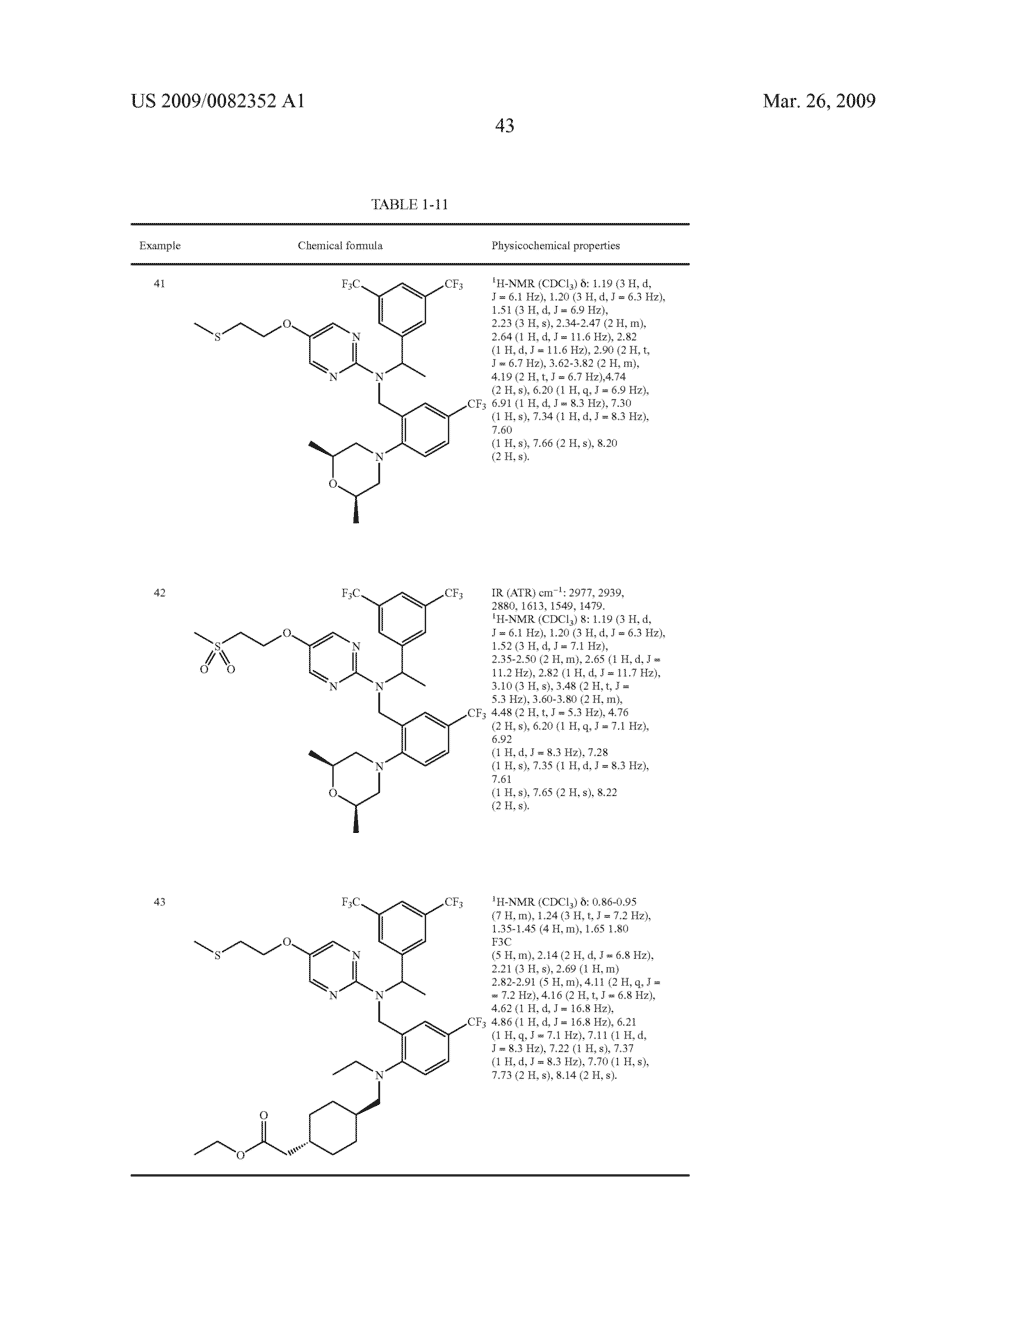 NOVEL PYRIMIDINE COMPOUND HAVING DIBENZYLAMINE STRUCTURE AND MEDICAMENT COMPRISING THE SAME - diagram, schematic, and image 45